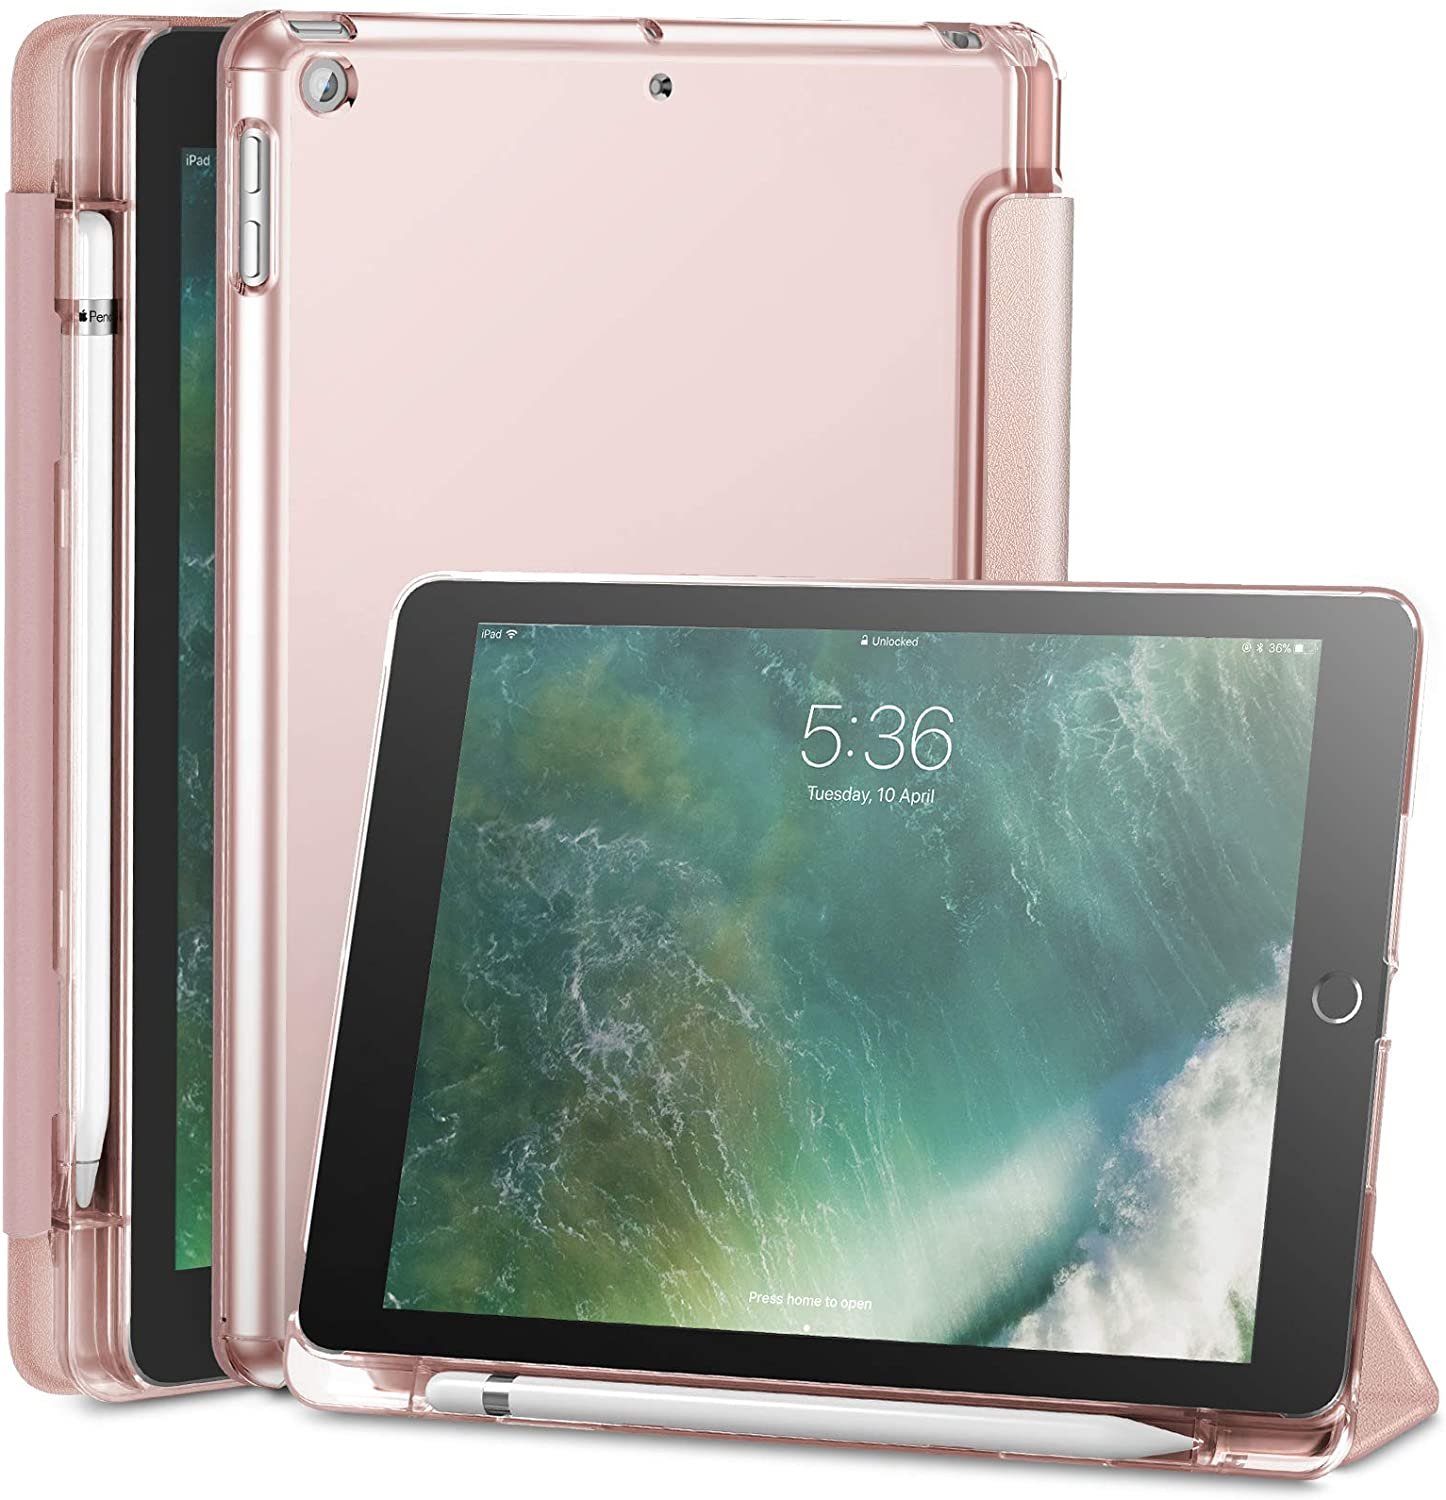 Infiland iPad 9.7 2018 Case with Apple Pencil Holder, Stand Case with Translucent Frosted Back Smart Cover Compatible with Apple iPad 9.7inch (6th Gen) 2018 Release, Rose-Gold